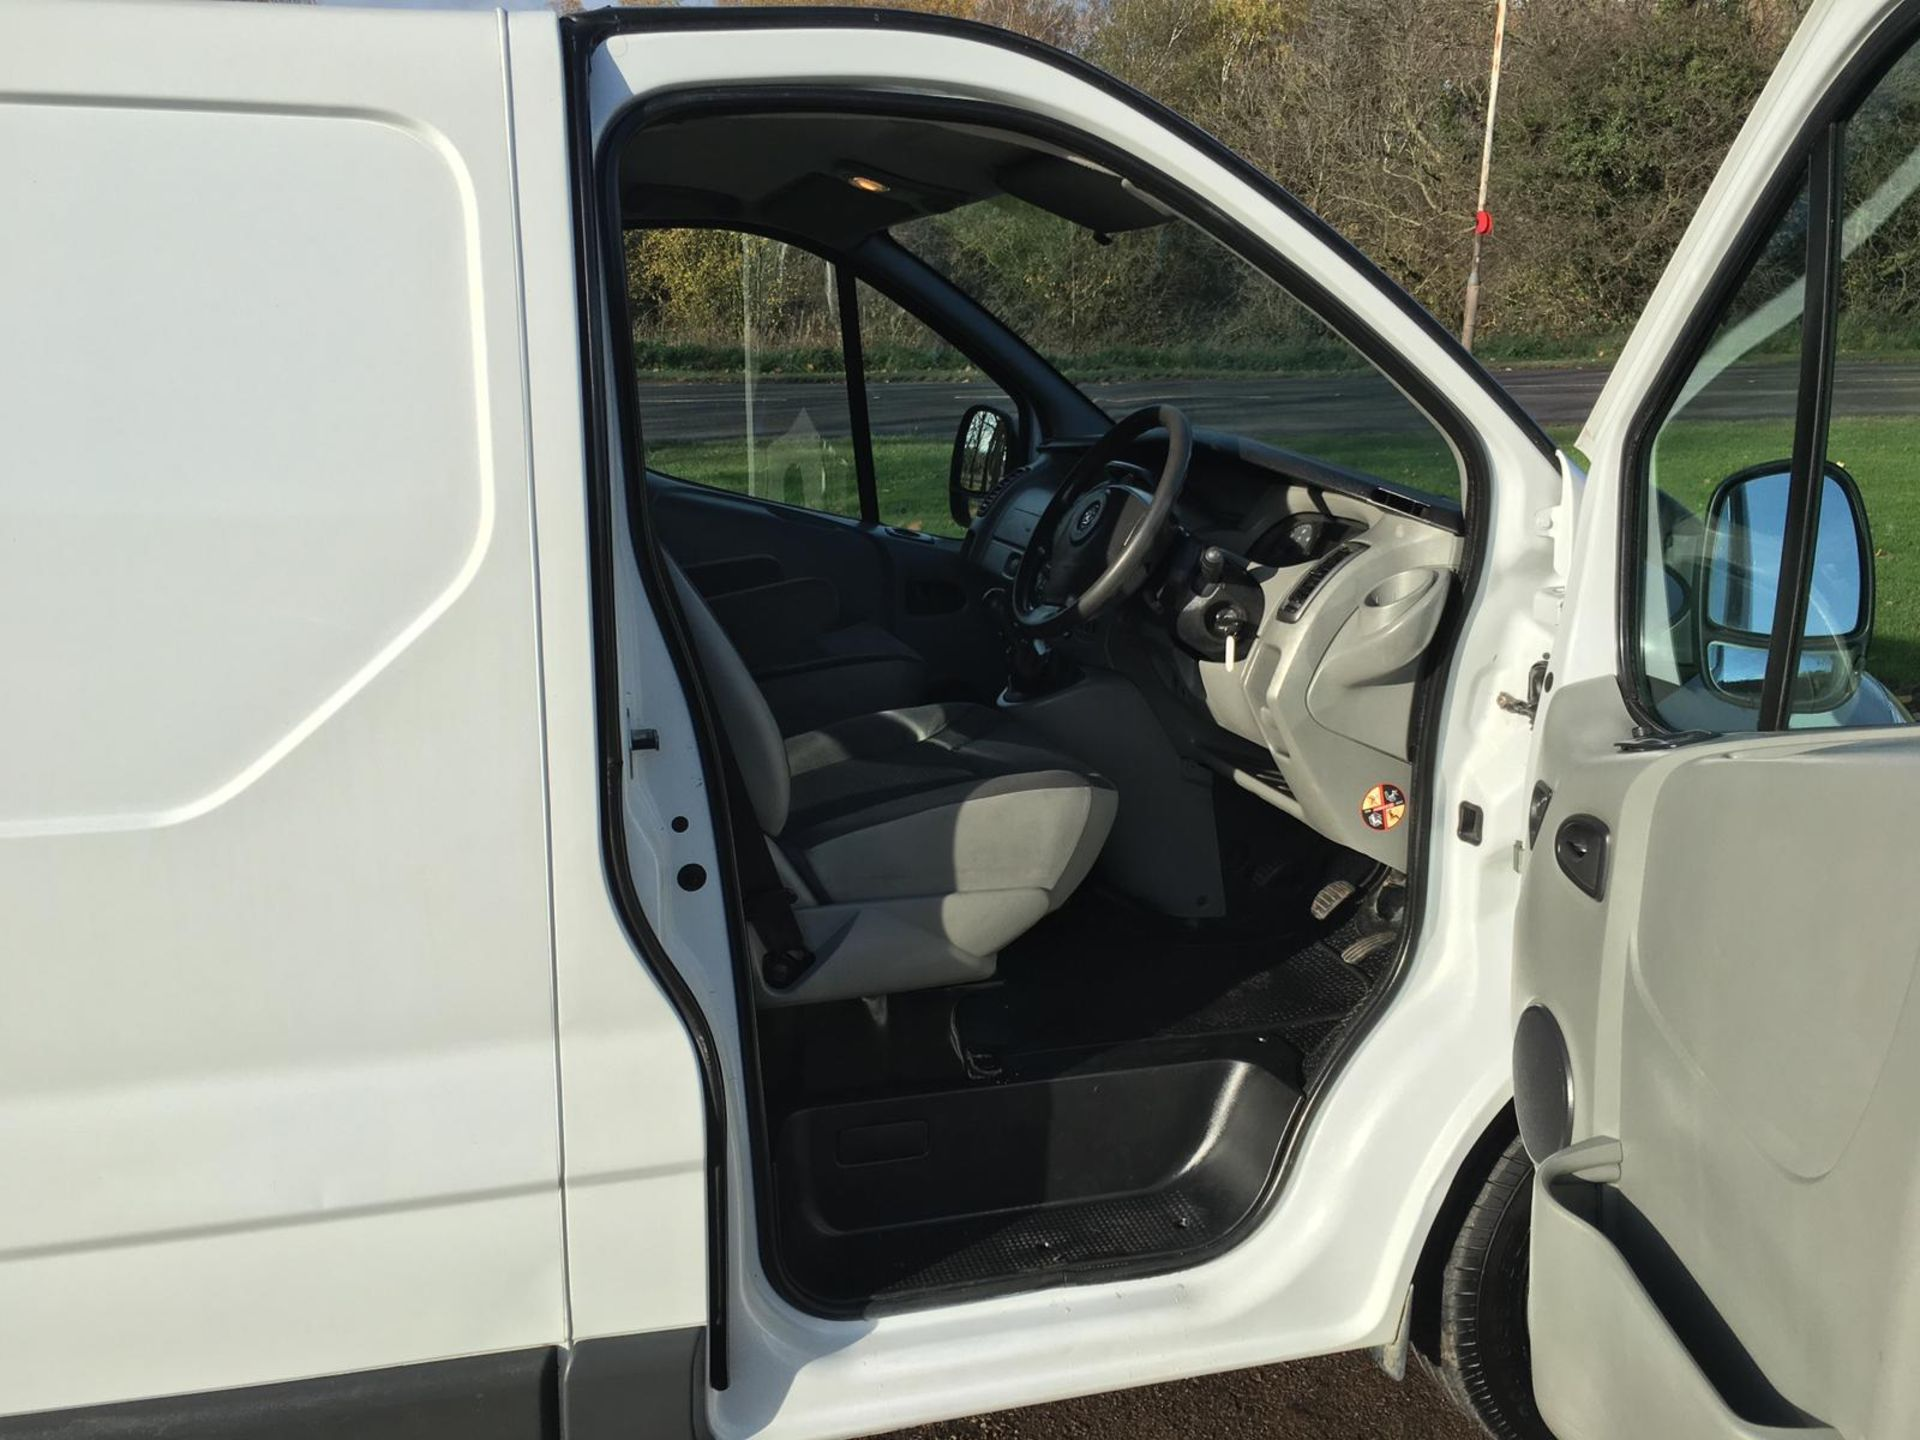 2008/58 REG VAUXHALL VIVARO 2900 CDTI SWB 2.0 DIESEL WHITE PANEL VAN, SHOWING 1 FORMER KEEPER - Image 5 of 12